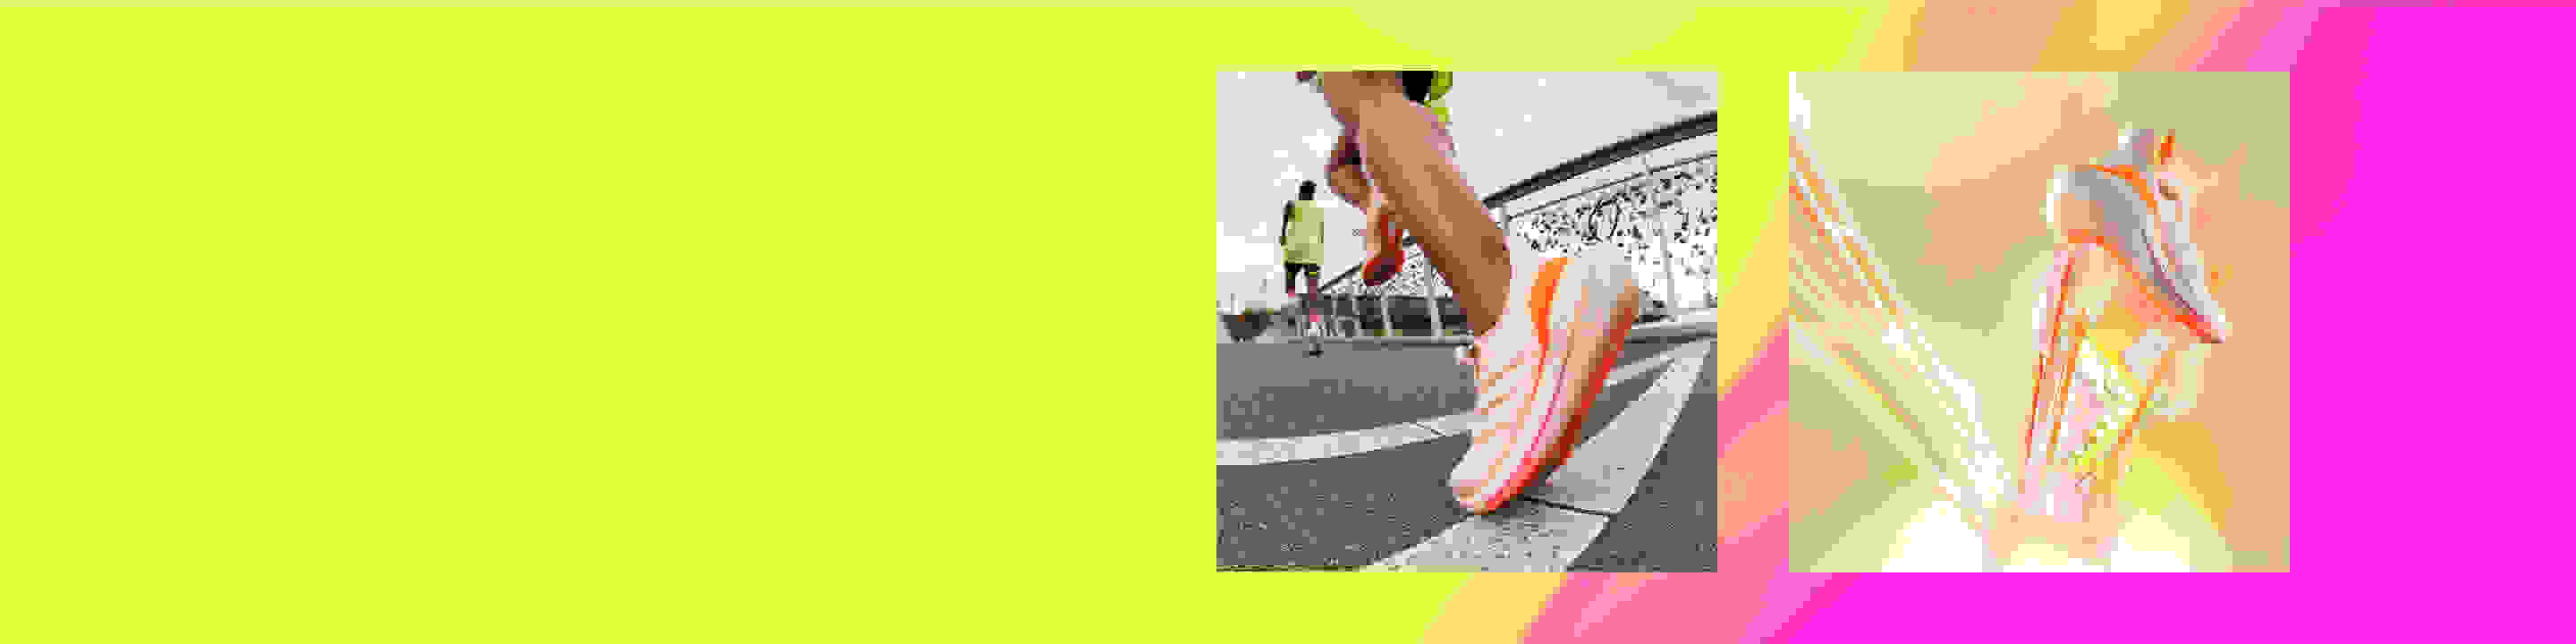 Group of people running with incredible energy return while wearing the new Ultraboost 21 running shoe.